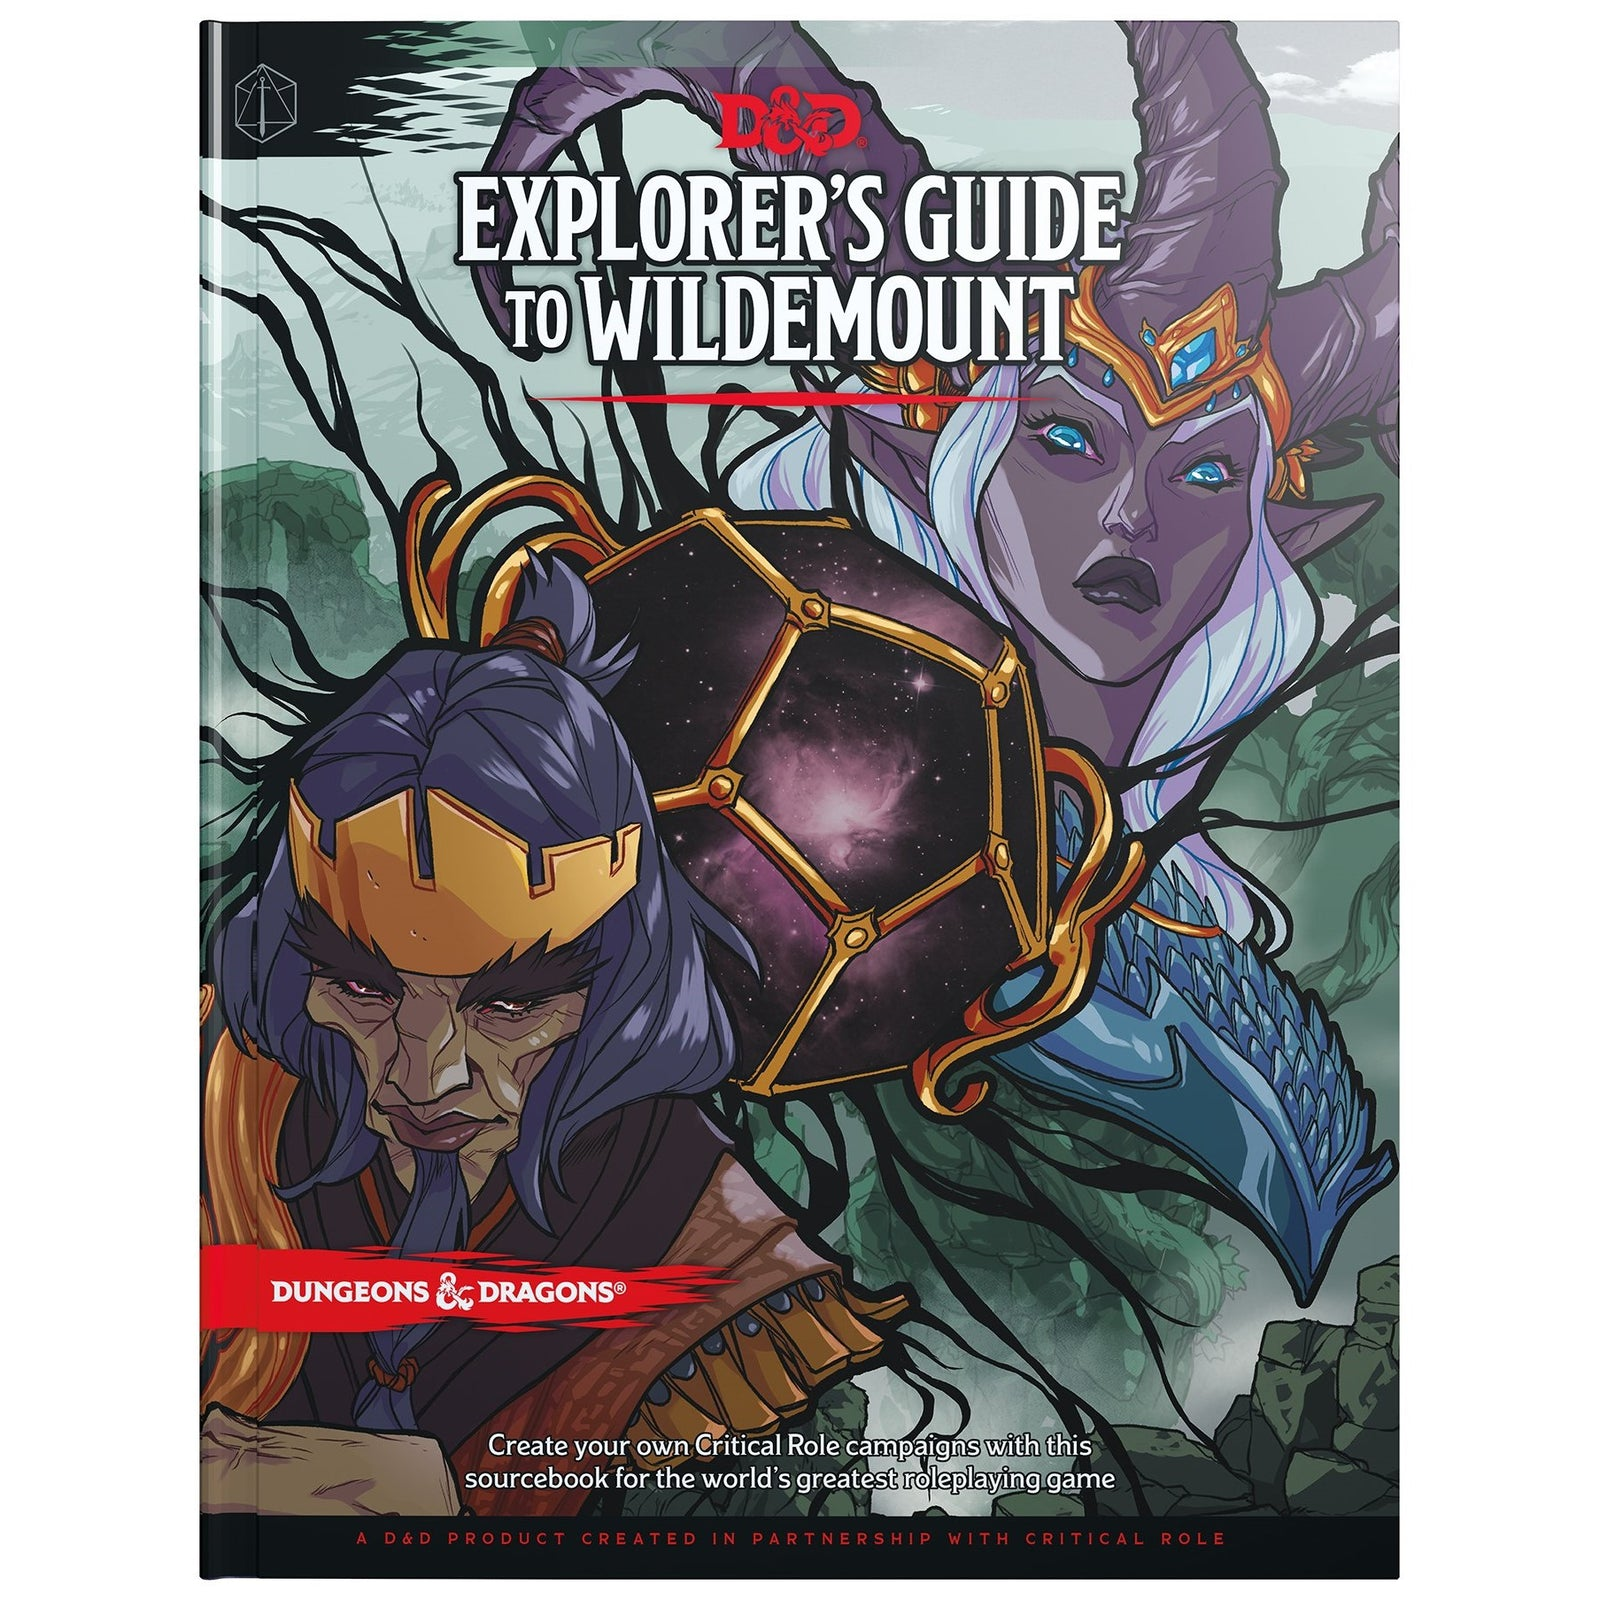 Dungeons and Dragons: Explorers guide to Wildmount